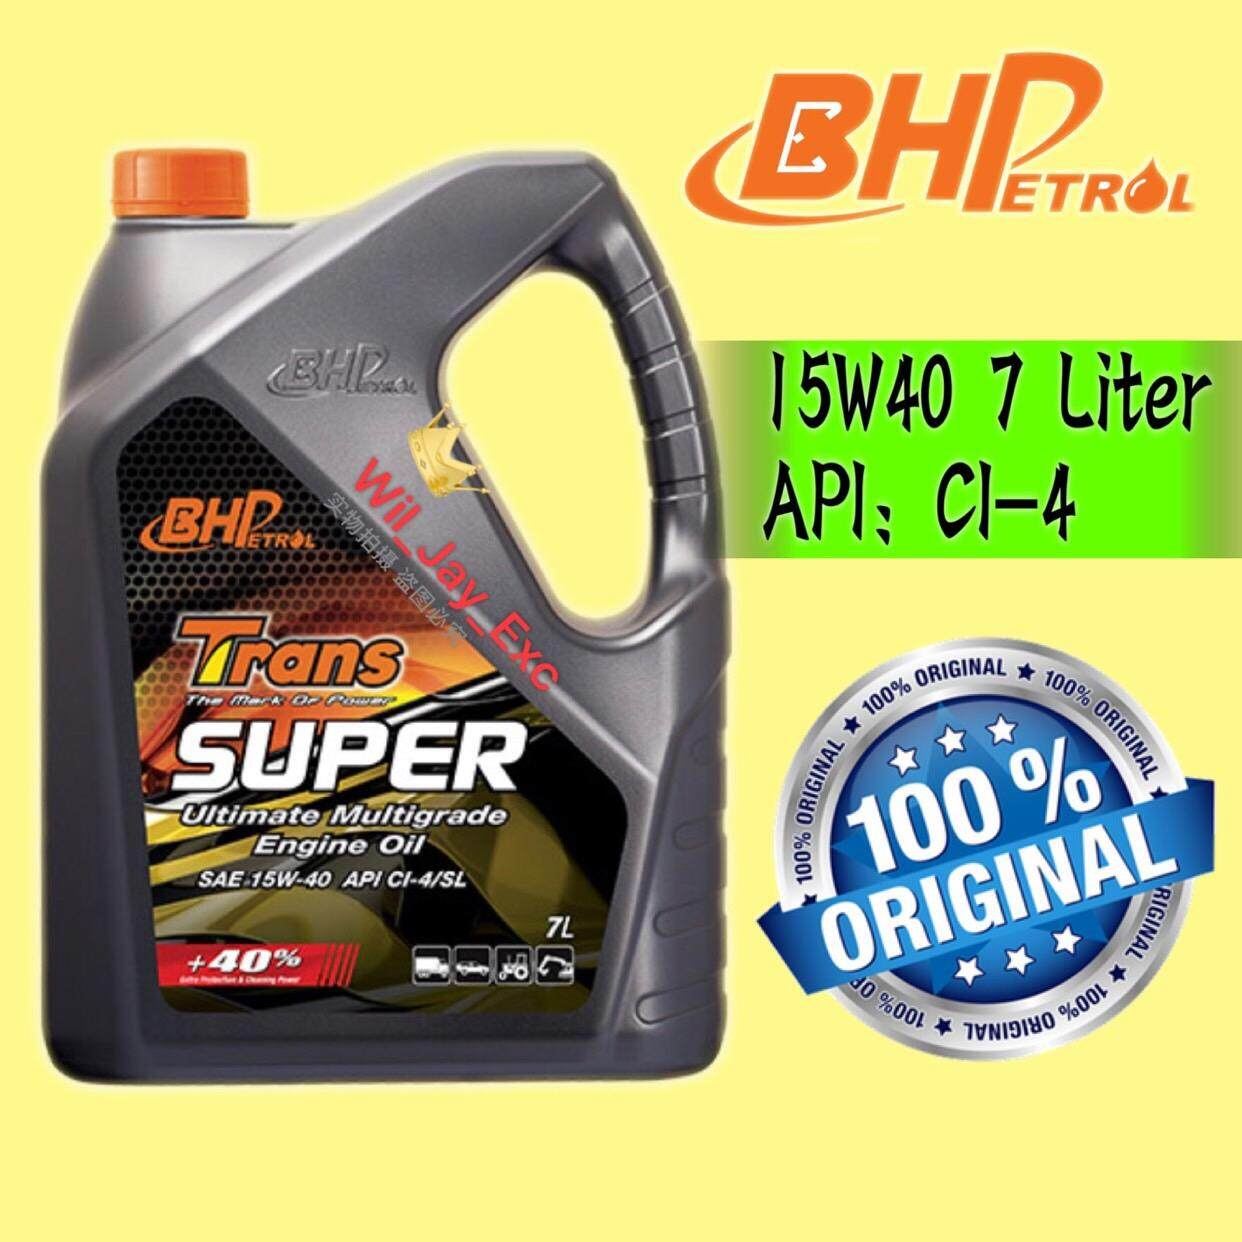 Bhp 15w40 7 Liter Diesel Engine Oil(trans Super) By Wil_jay_3143.